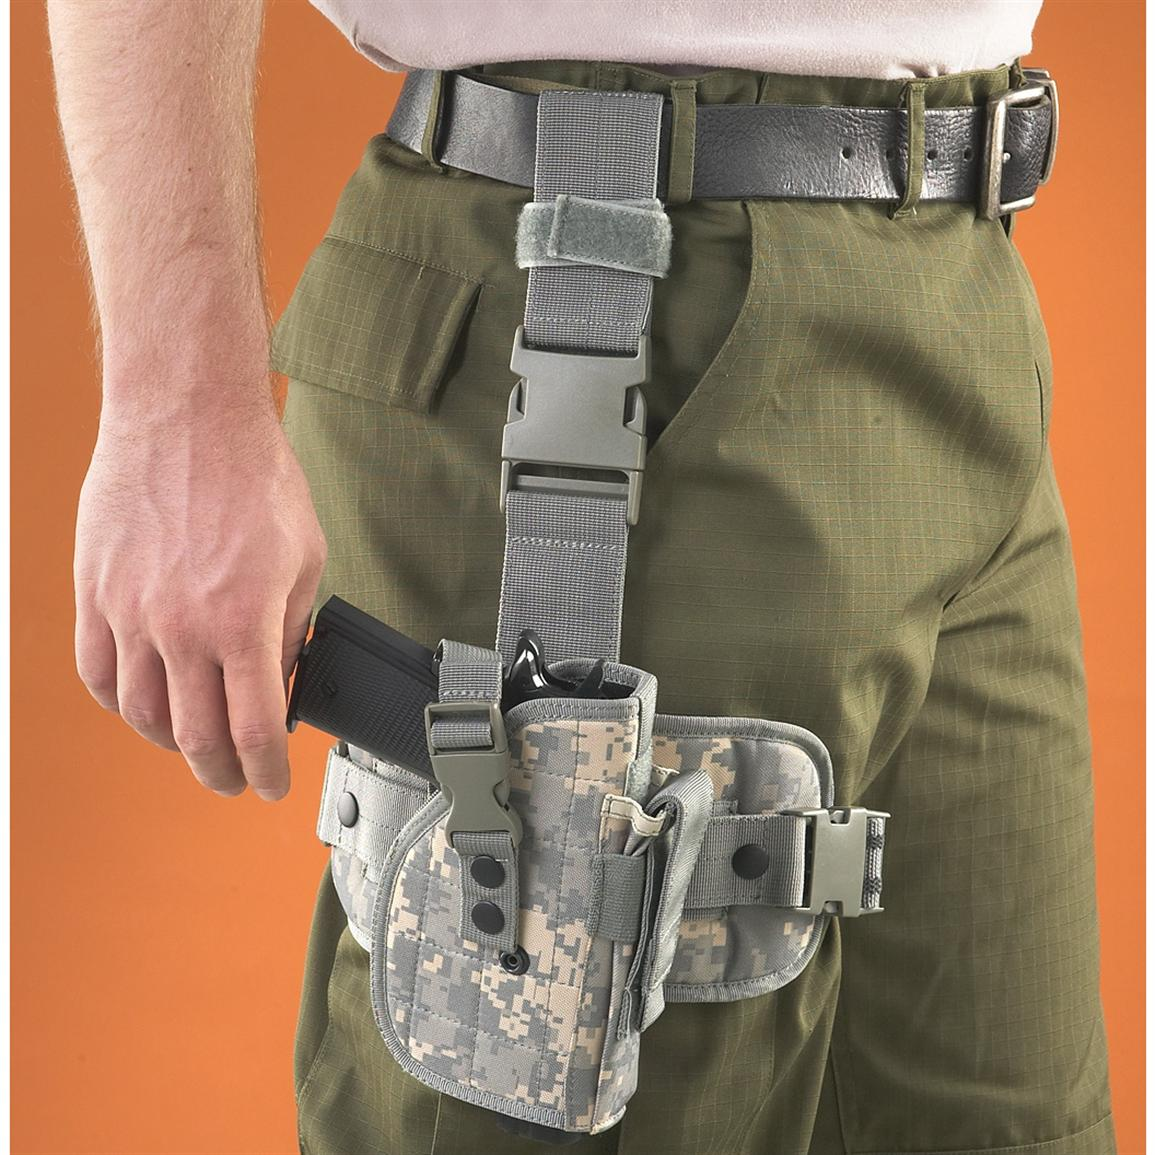 Fox Outdoors Military-Style Drop Leg Holster, Army Digital